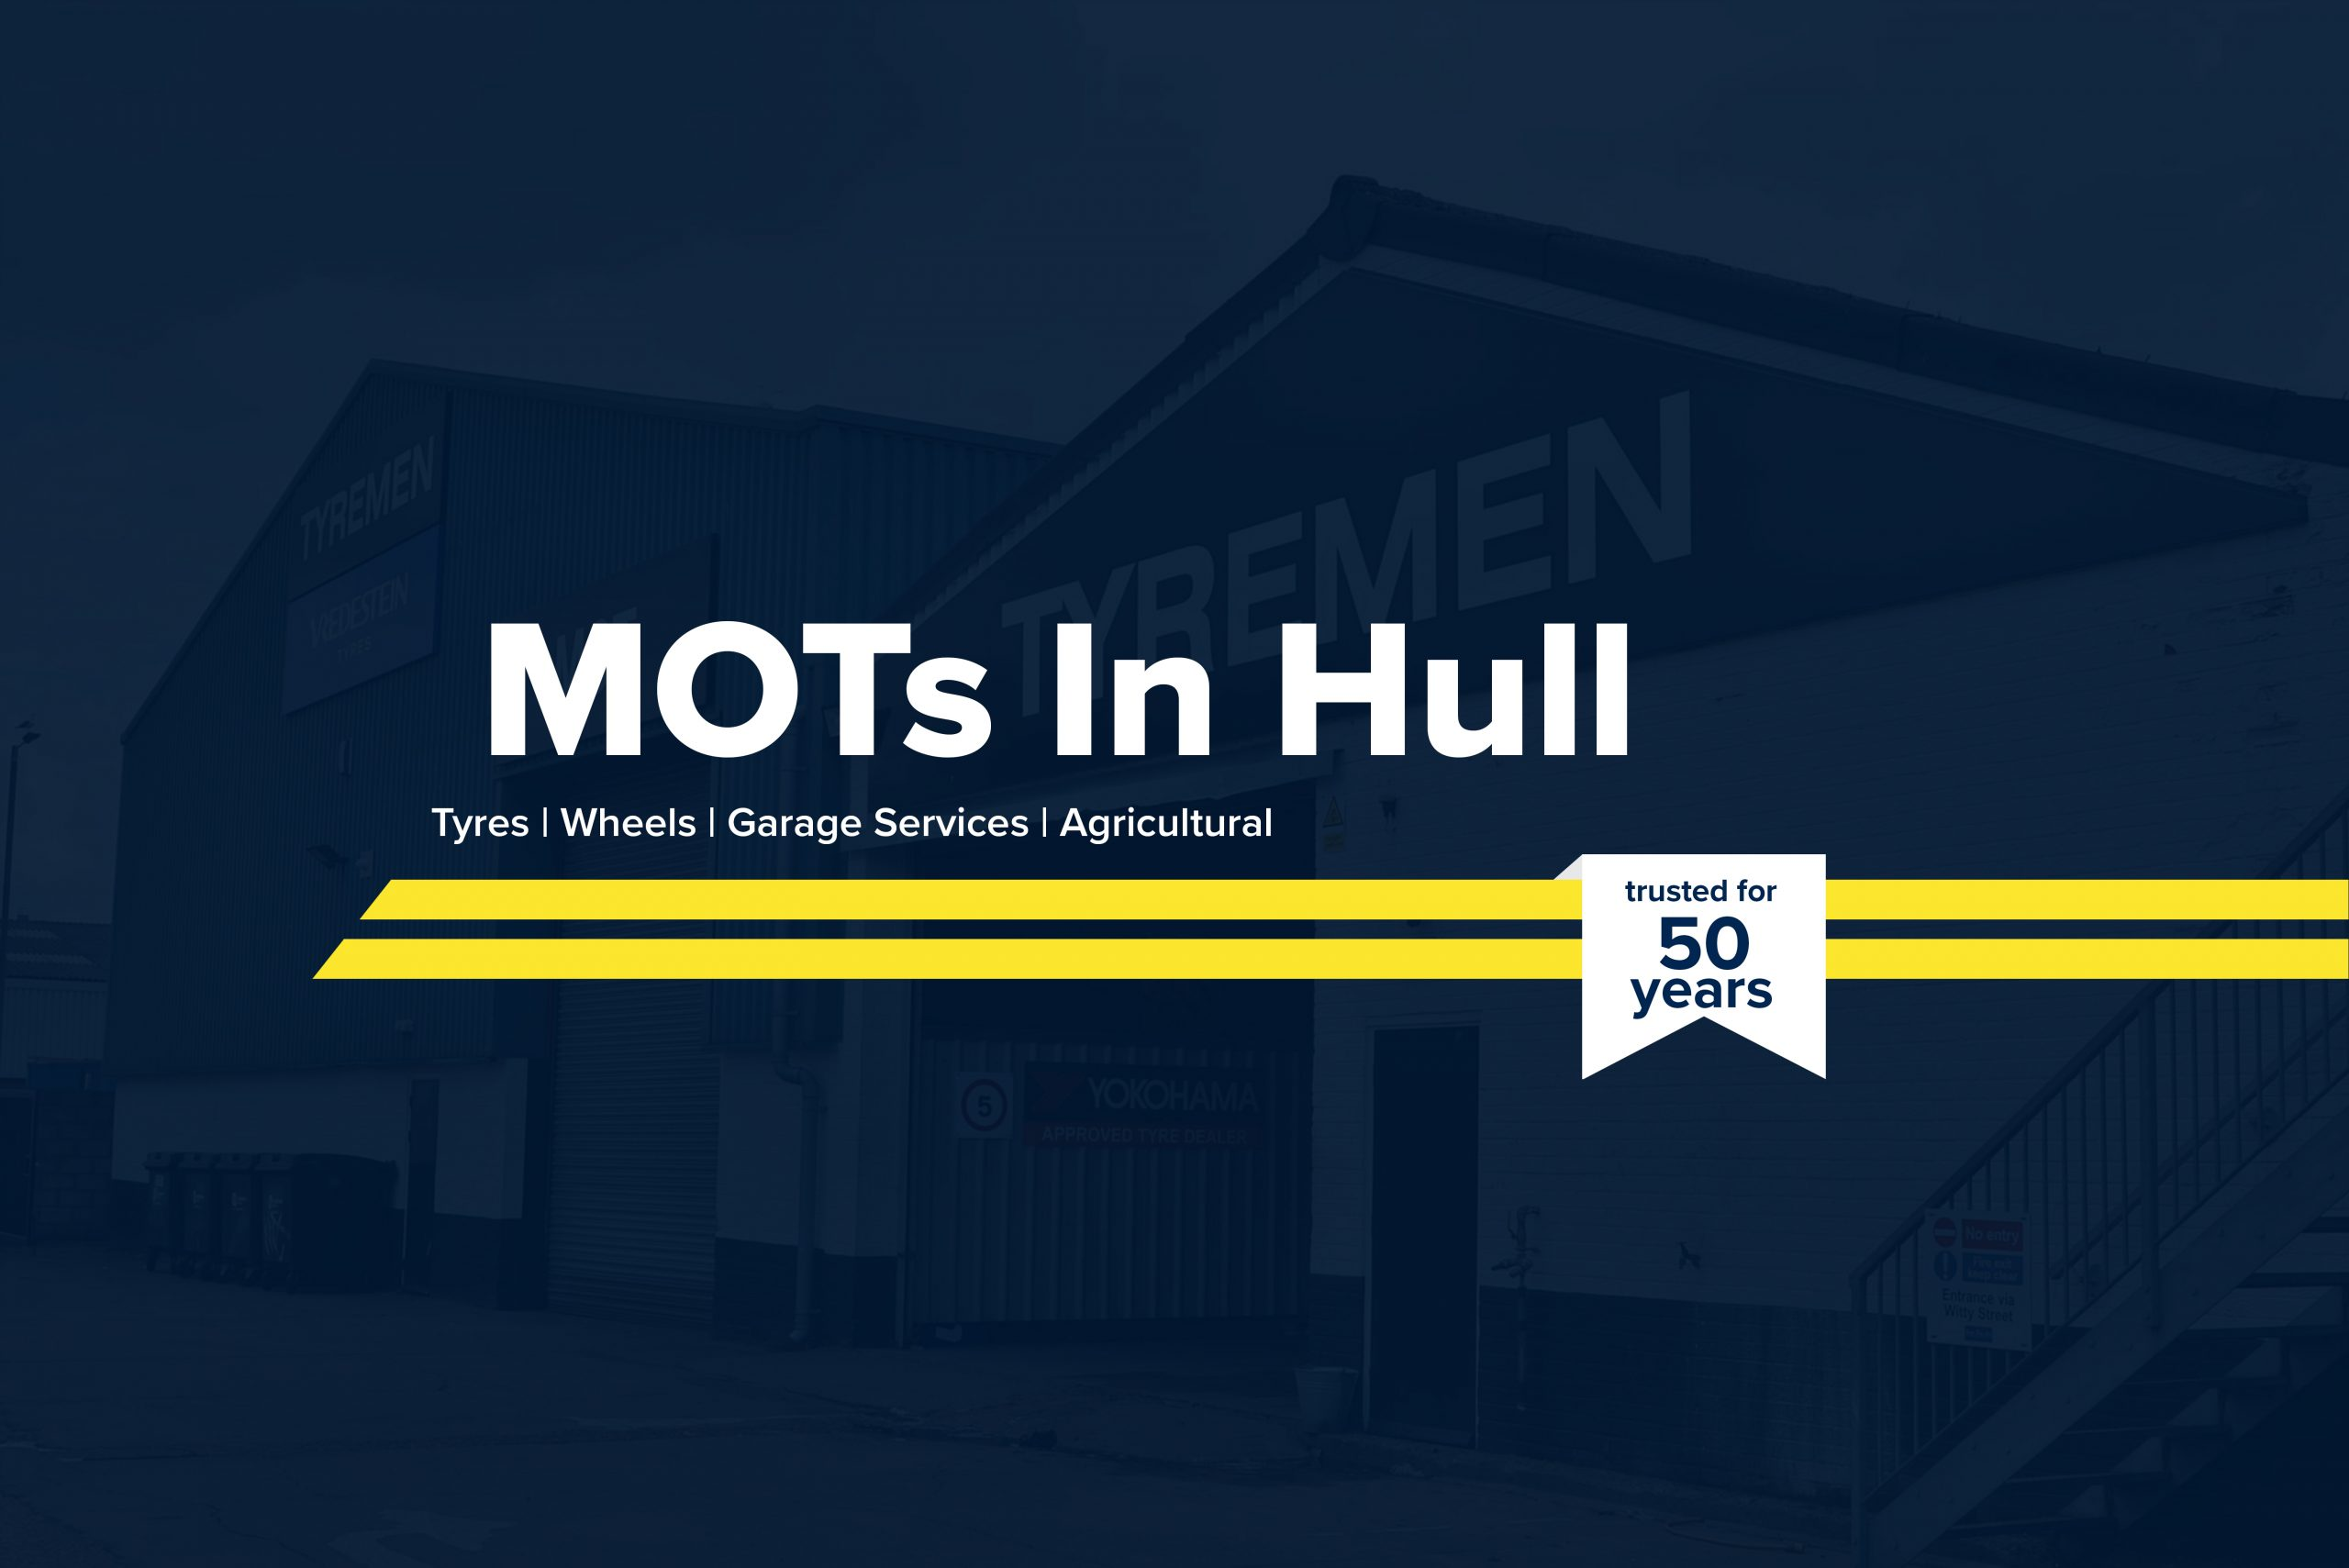 mots in hull, alloy wheels, garage services hull